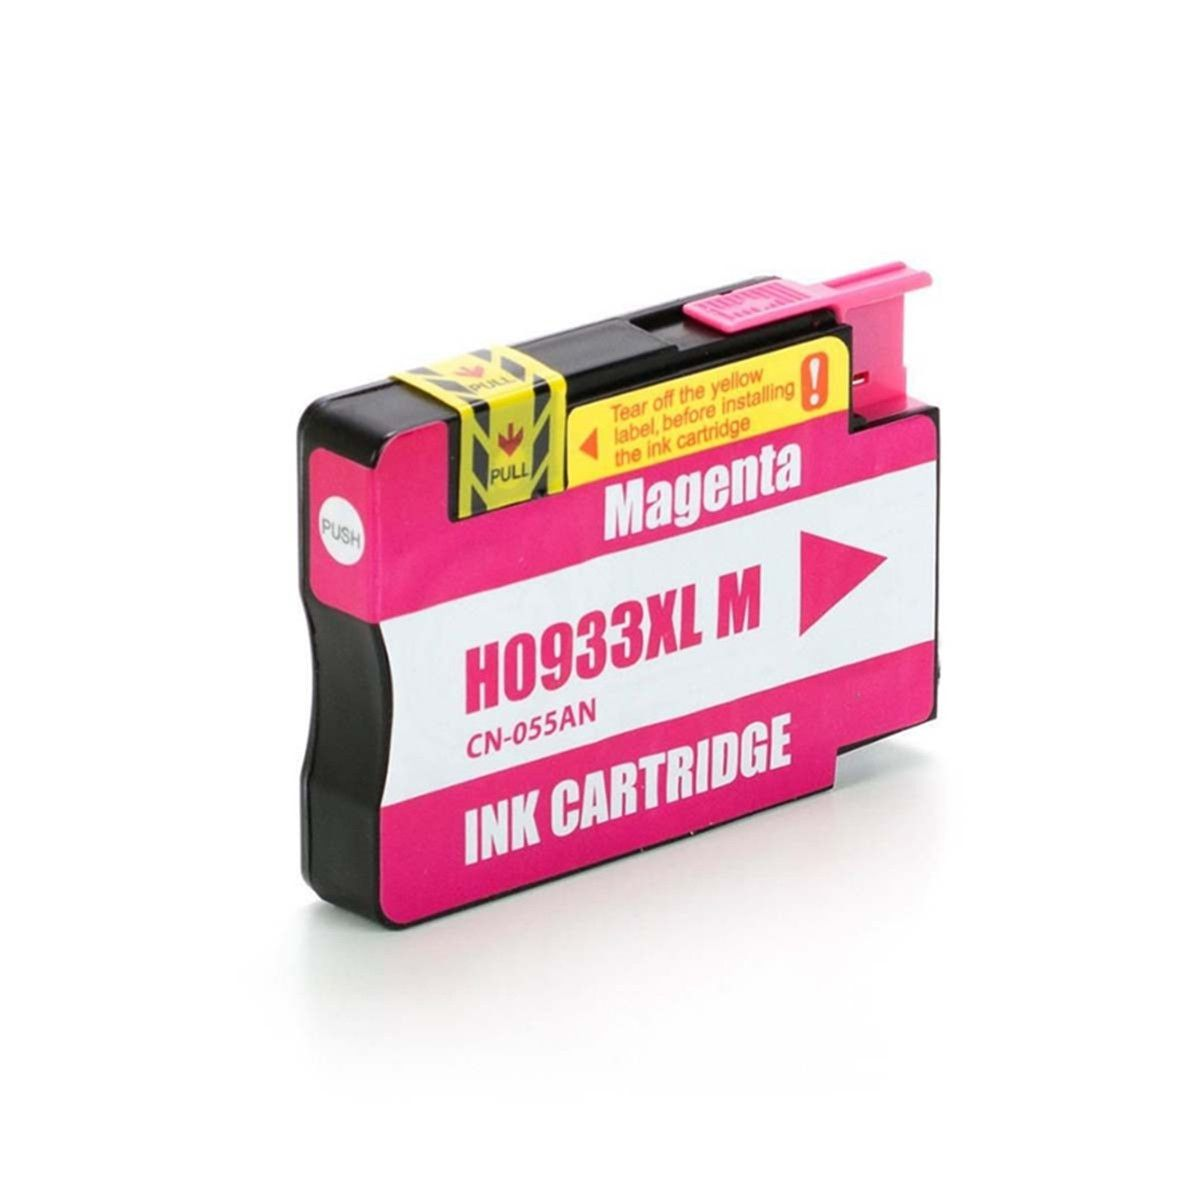 Cartucho HP 933XL Magenta para Officejet 7610 7110 Compativel